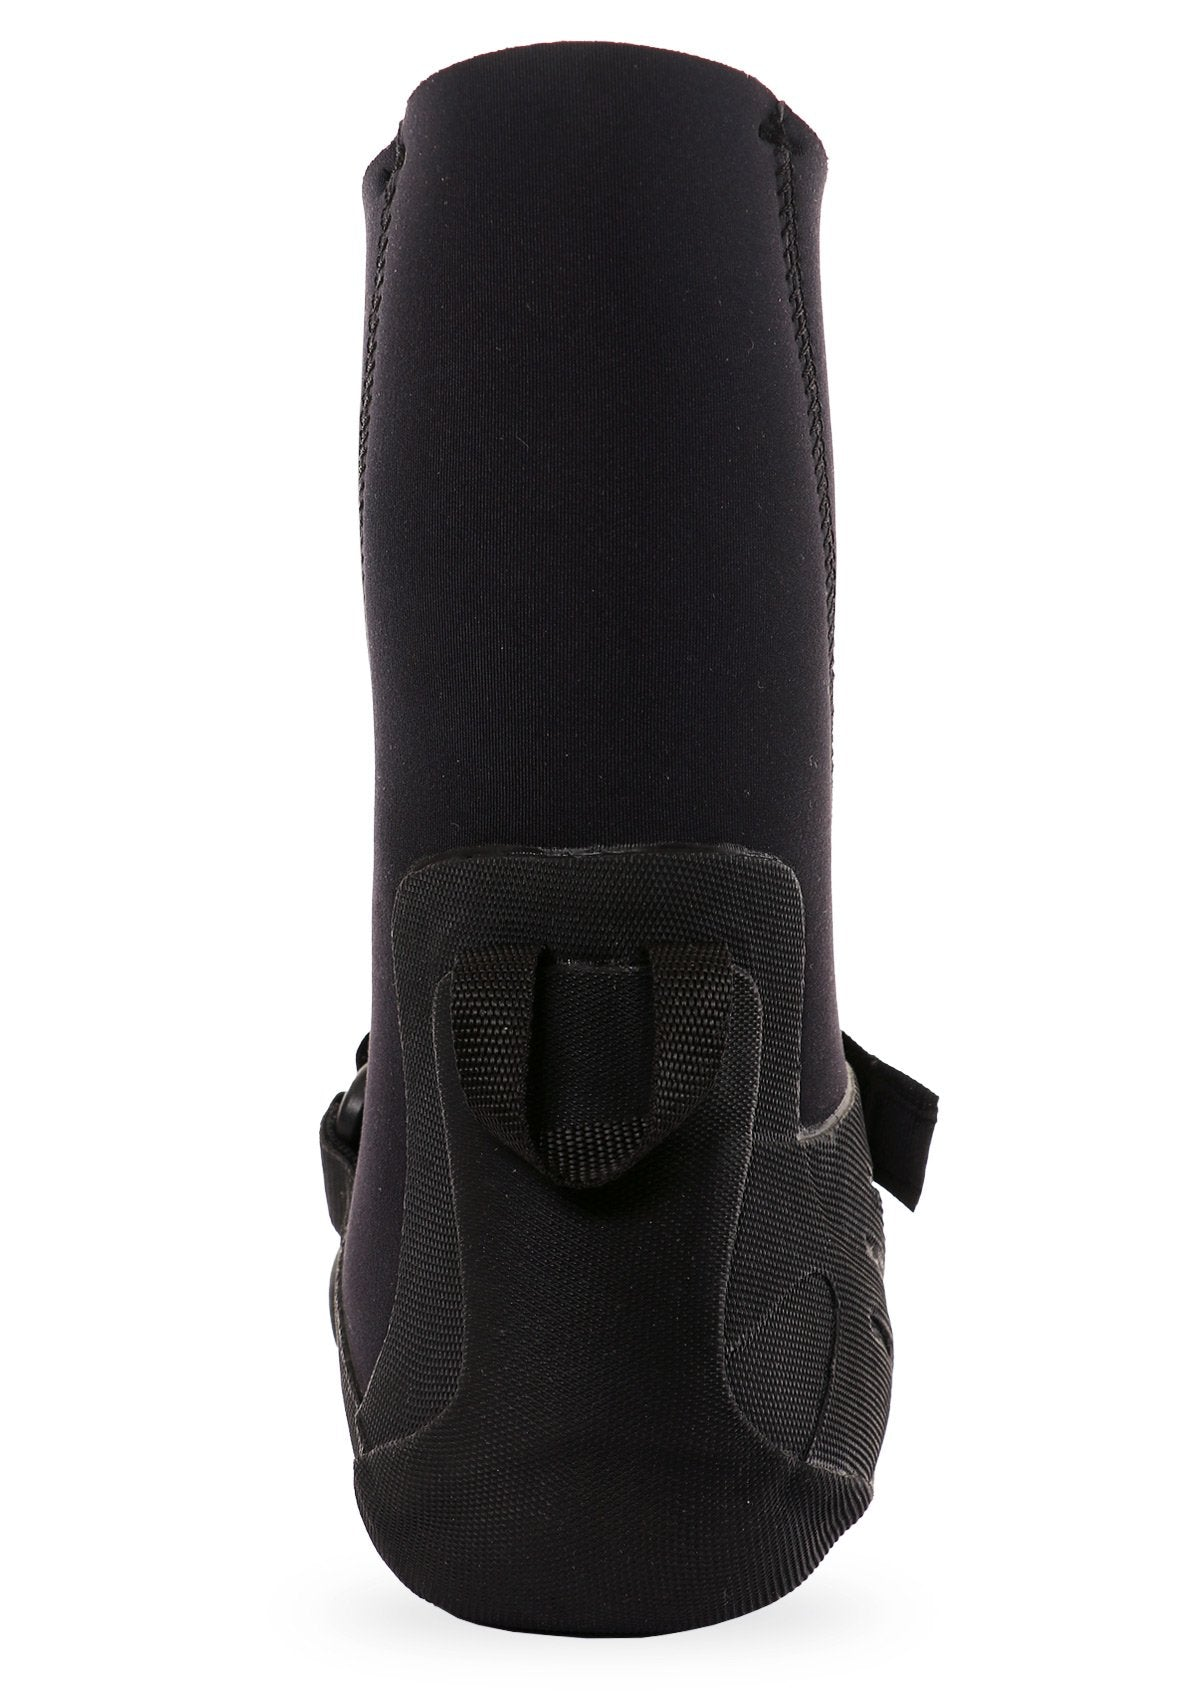 6mm Wetsuit Boot